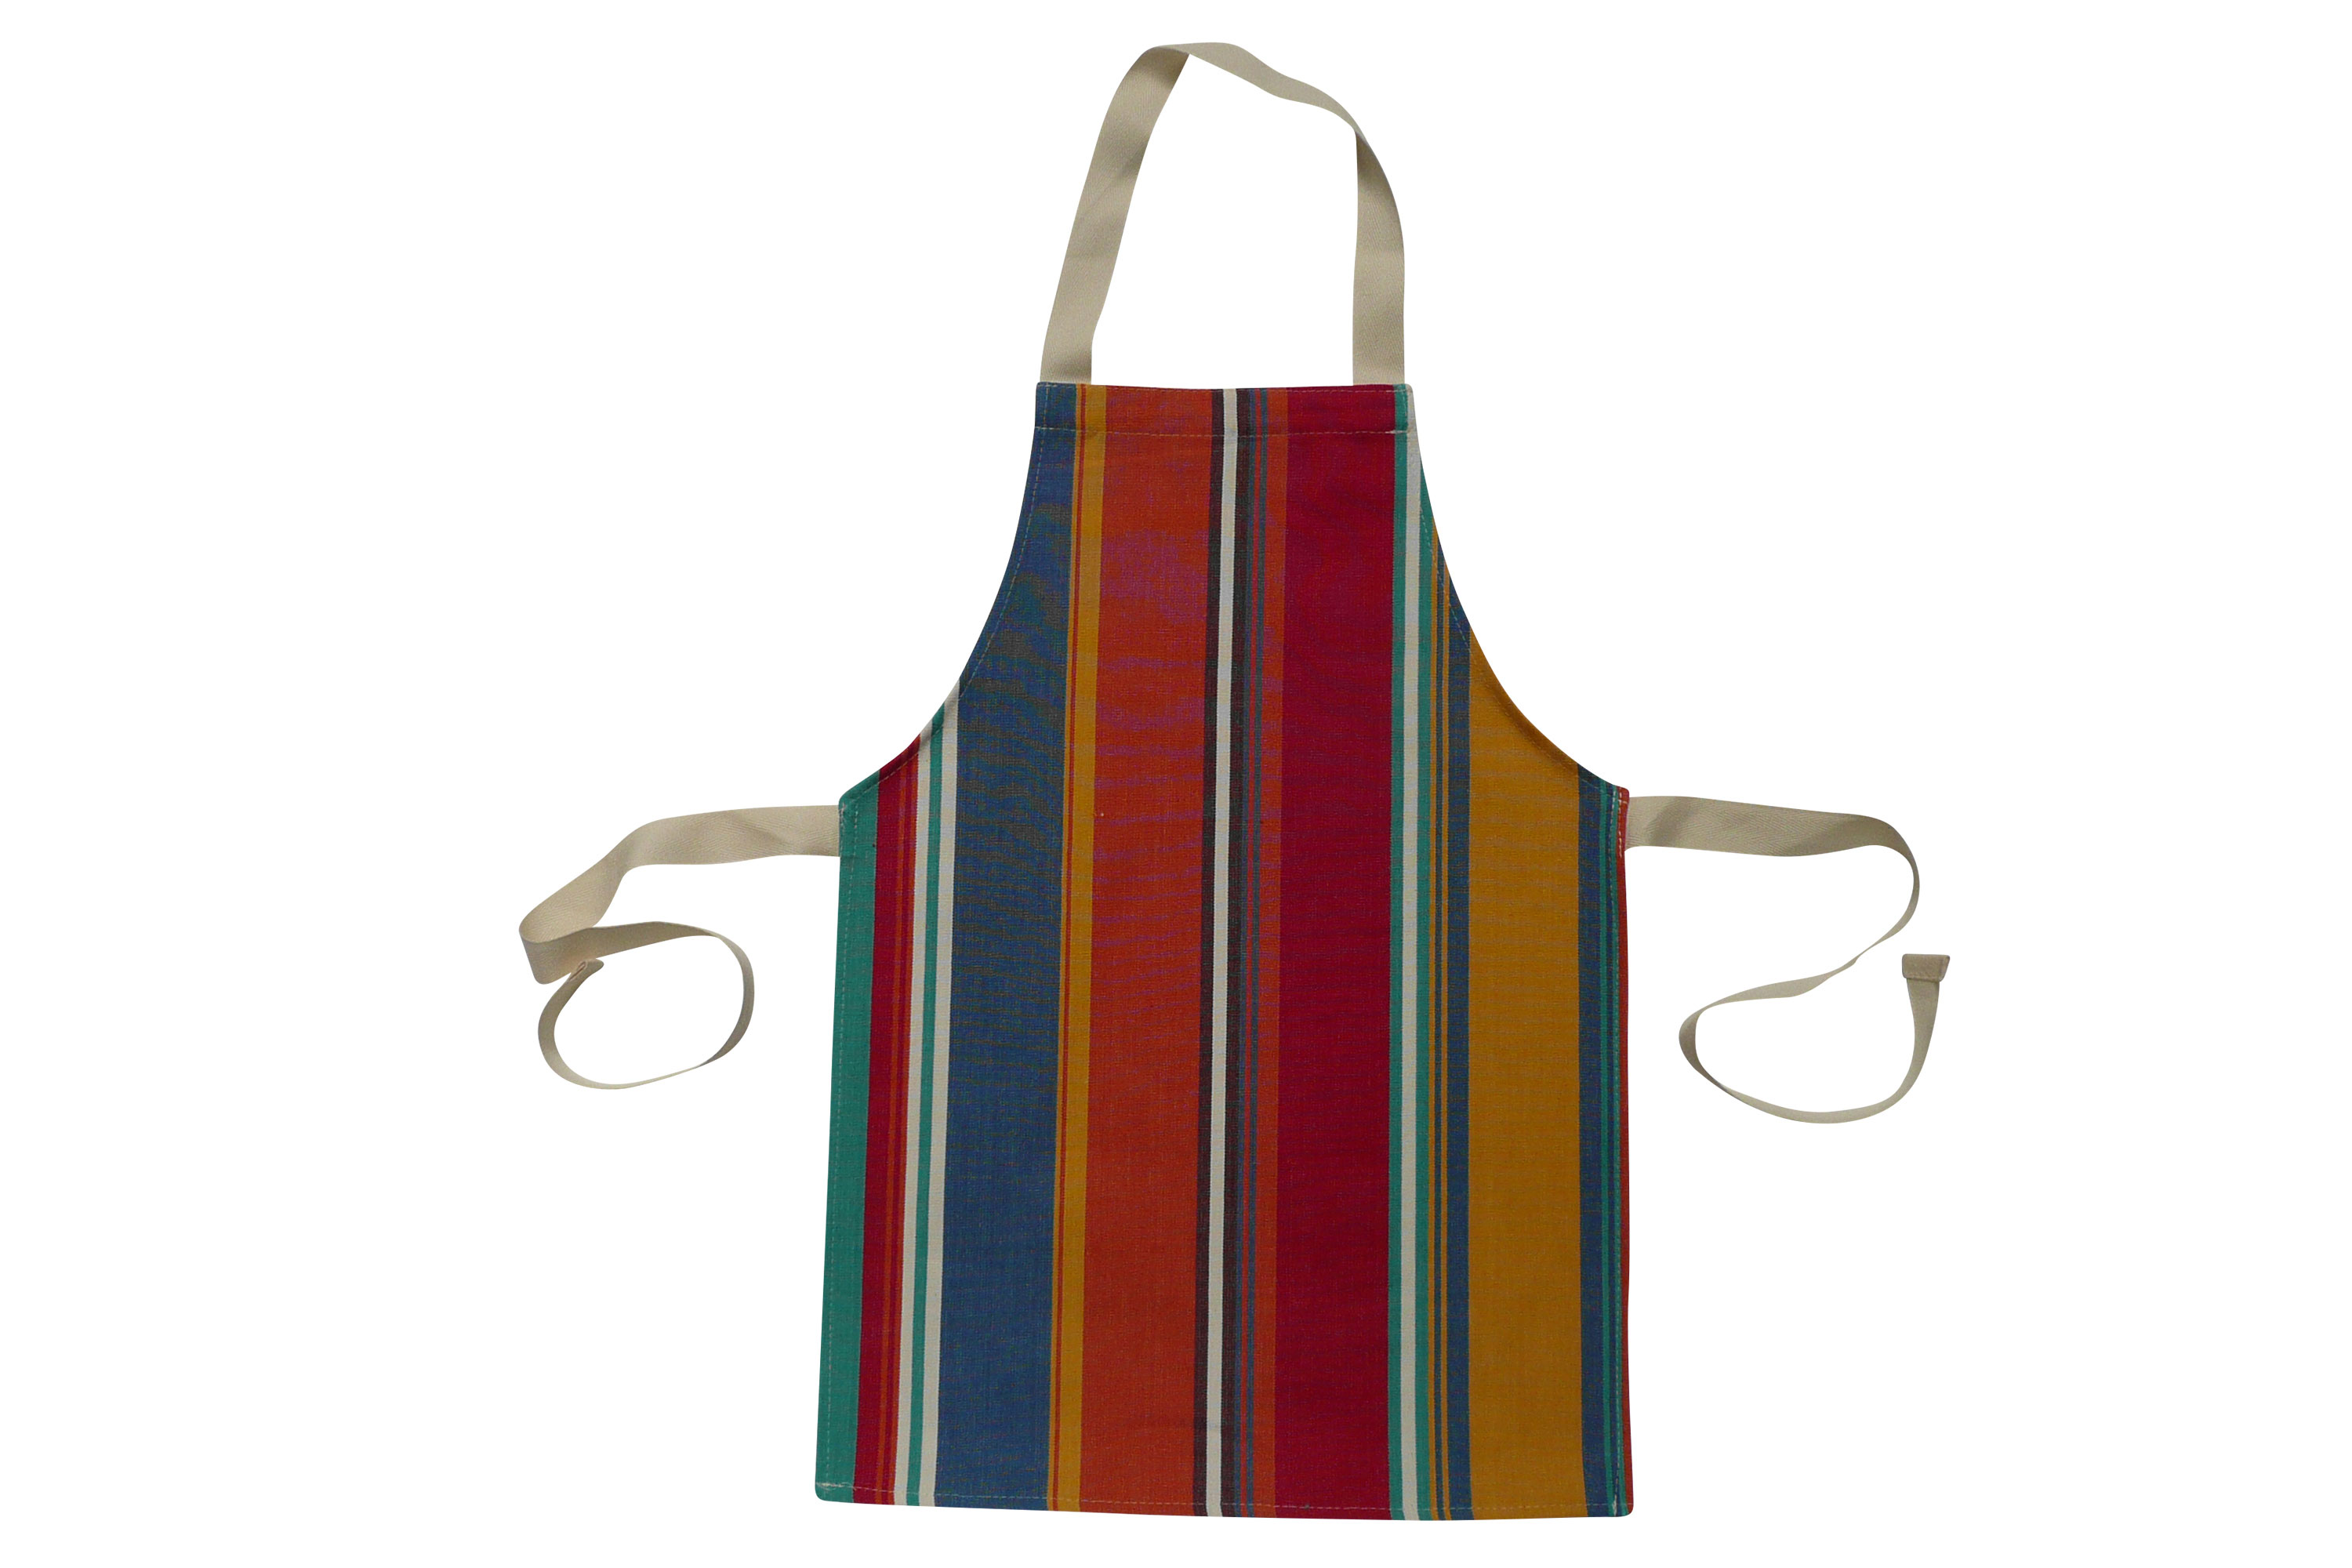 Toddlers Aprons - Striped Aprons For Small Childrenorange, blue, jade green